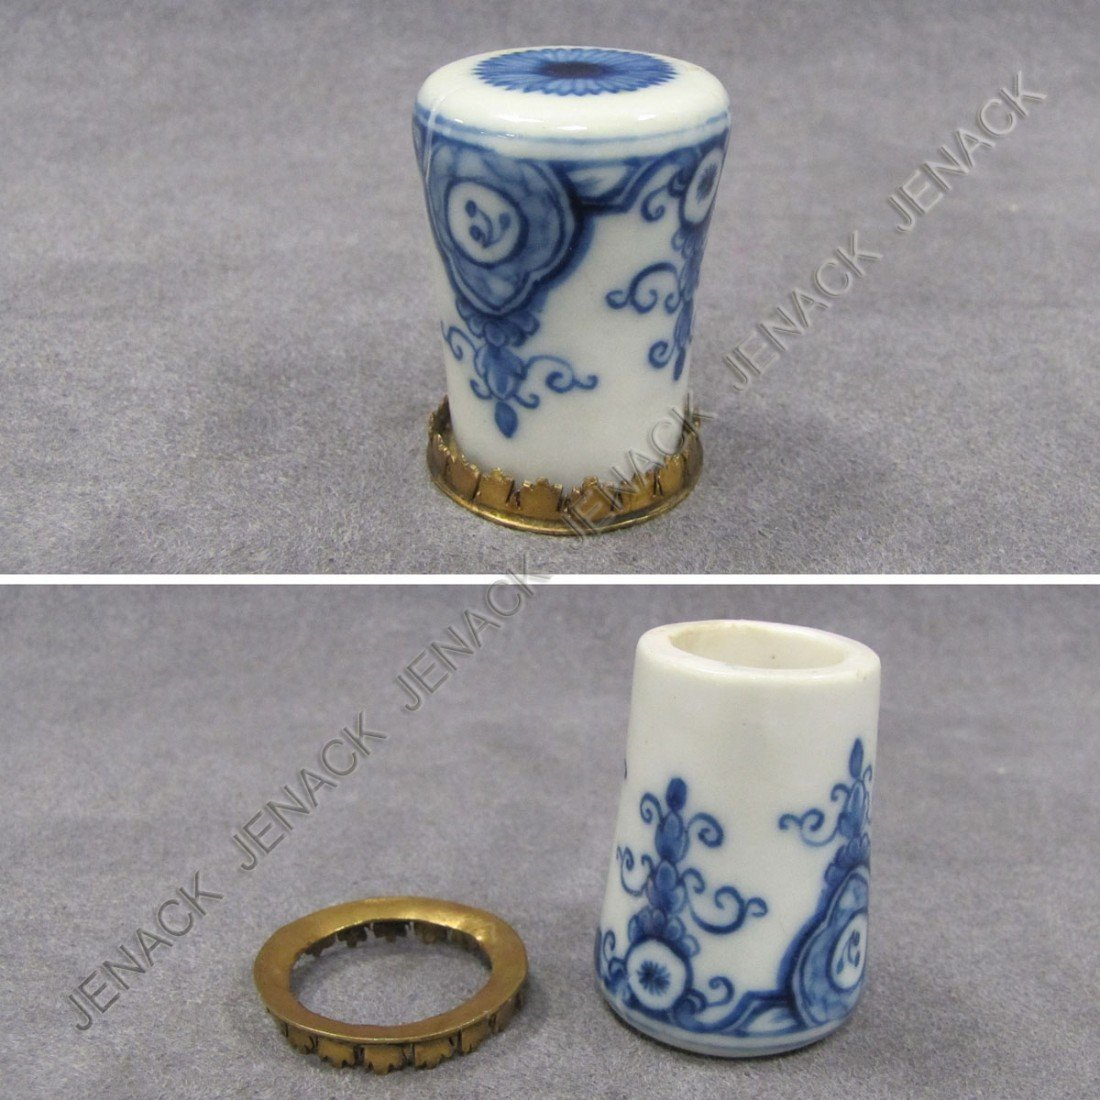 6: RARE ST. CLOUD PORCELAIN CANE HANDLE